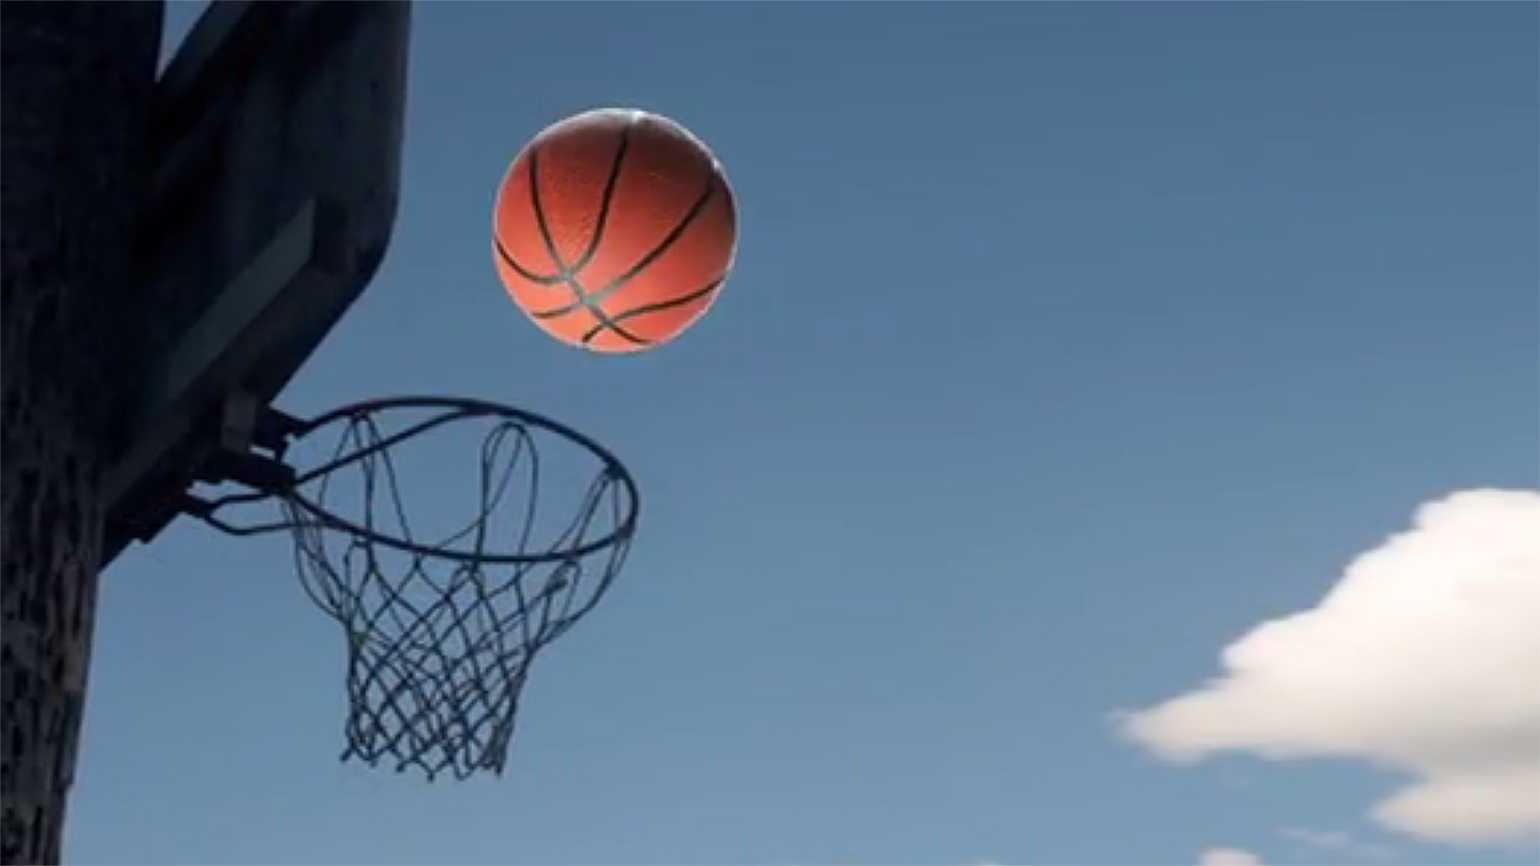 A basketball in midflight approaches the hoop and backboard